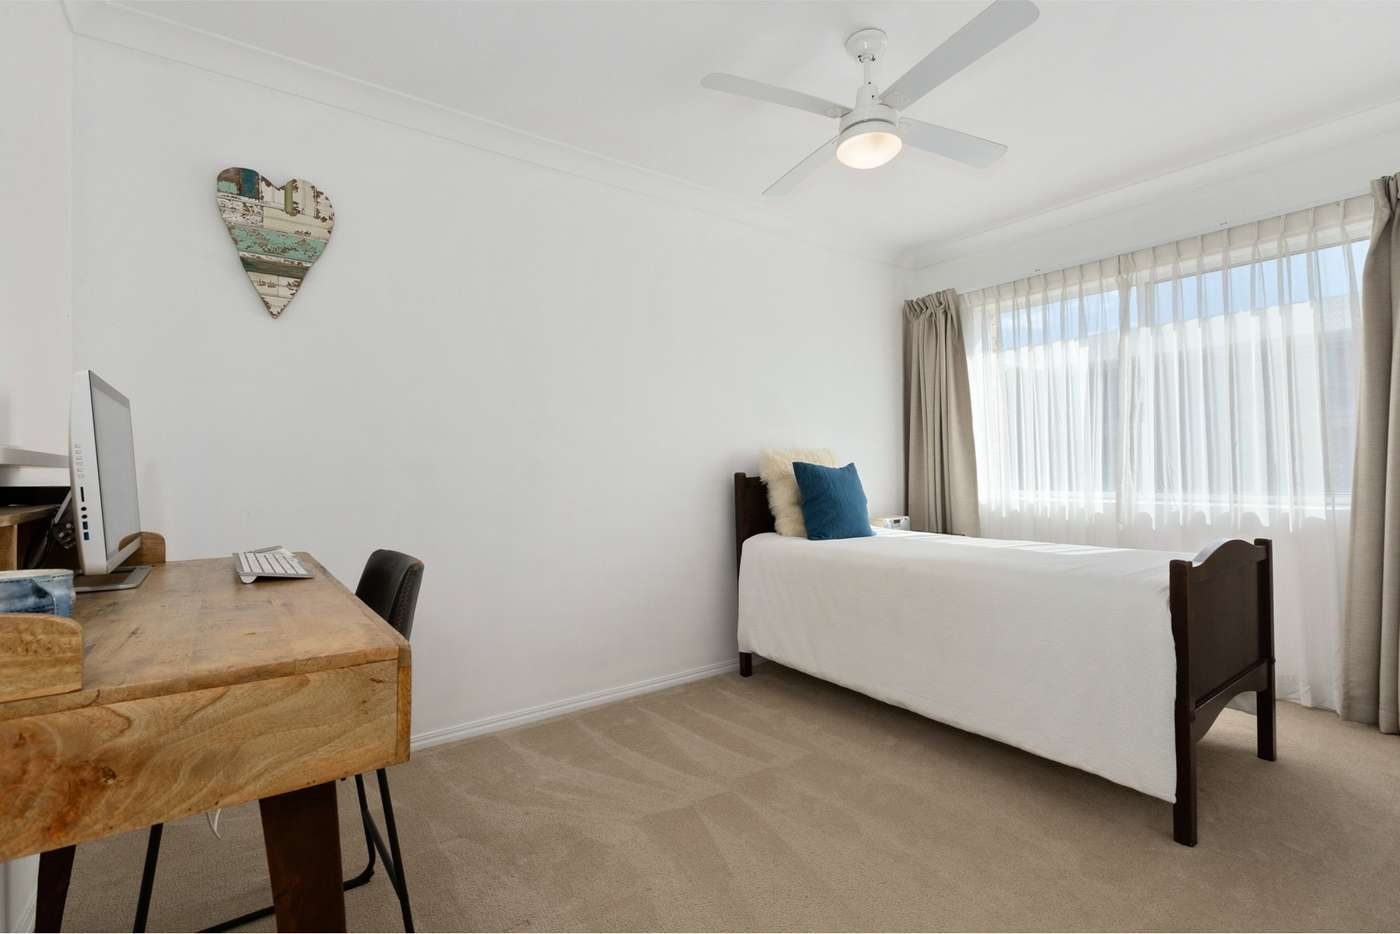 Sixth view of Homely unit listing, 6/10-12 Frances Street, Tweed Heads NSW 2485